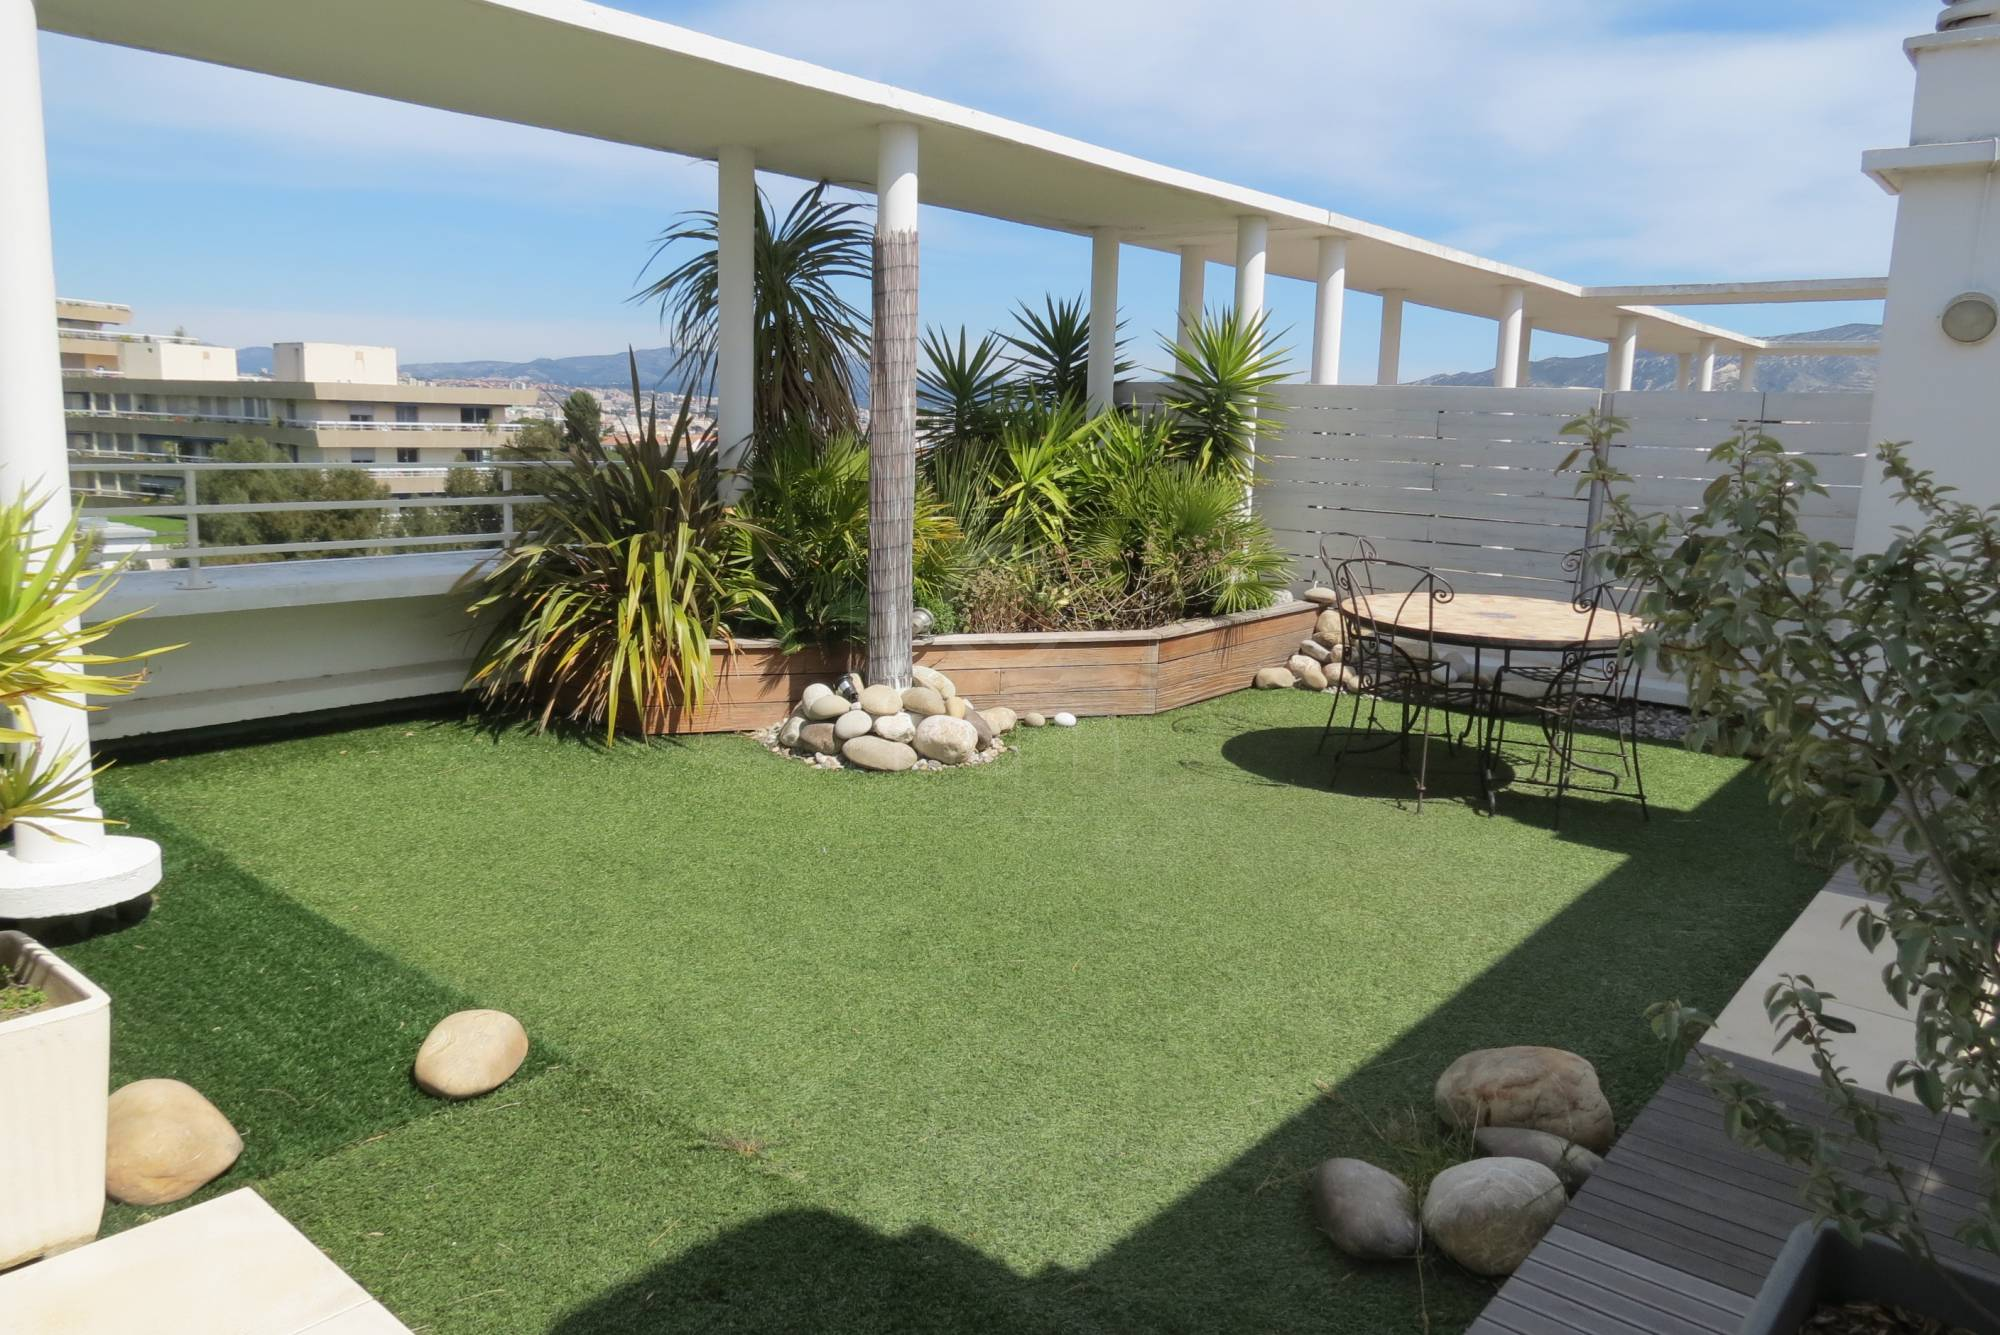 Vente appartement t4 f4 marseille 13008 cdt rolland toit for Appartement t4 avec terrasse marseille